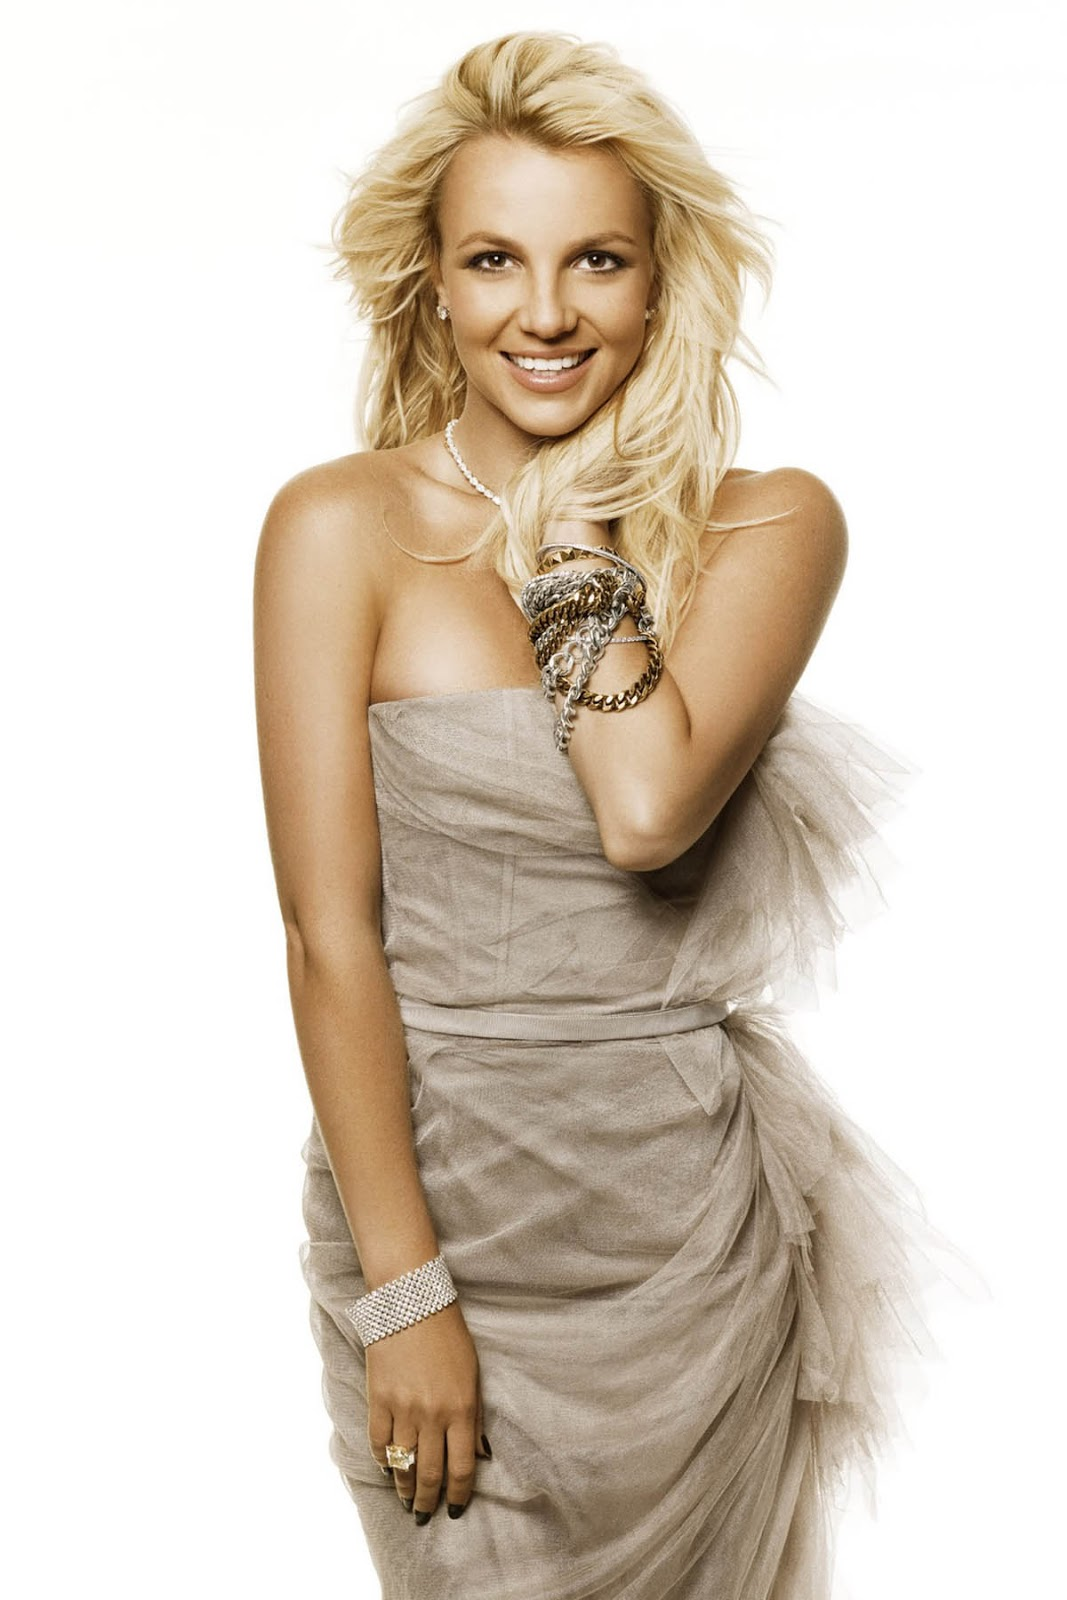 britney spears hd wallpapers collection - photo #38